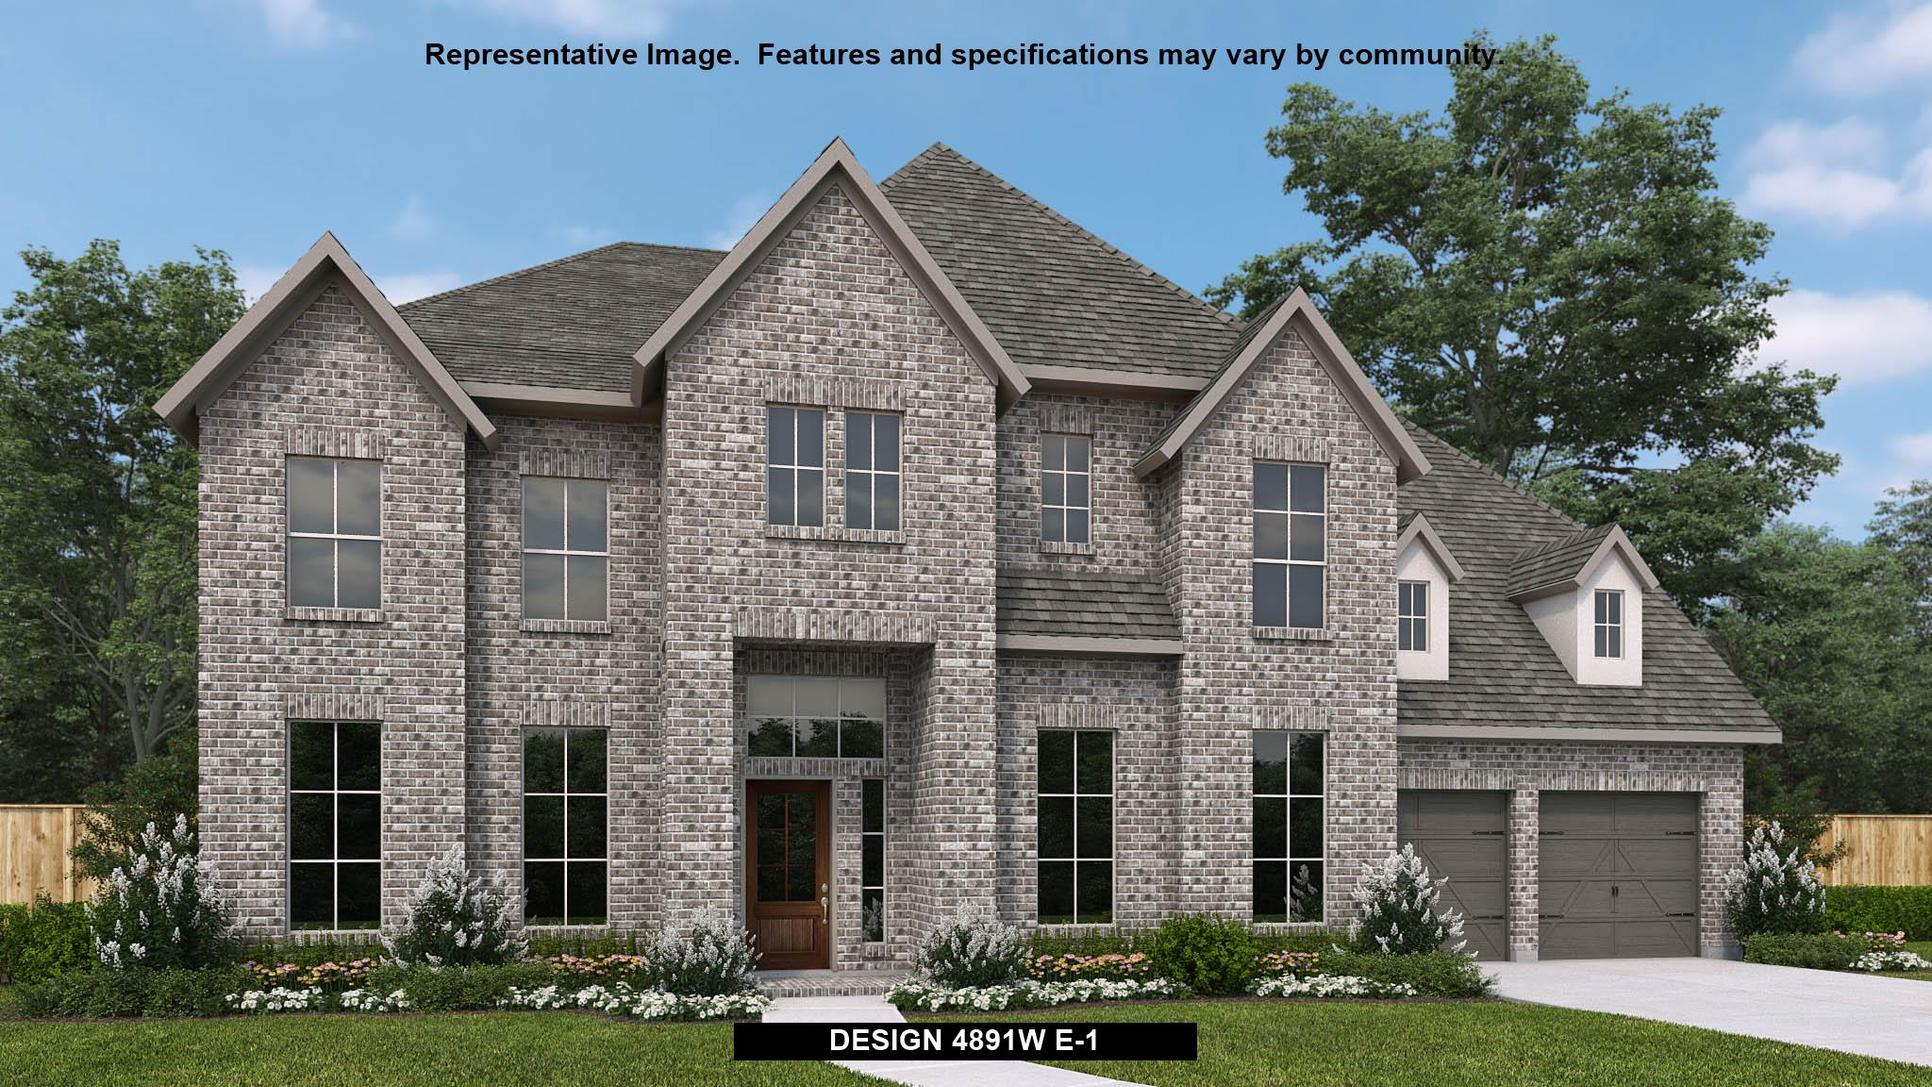 Plan 4891W:Representative photo.  Features and specifications may vary by community.